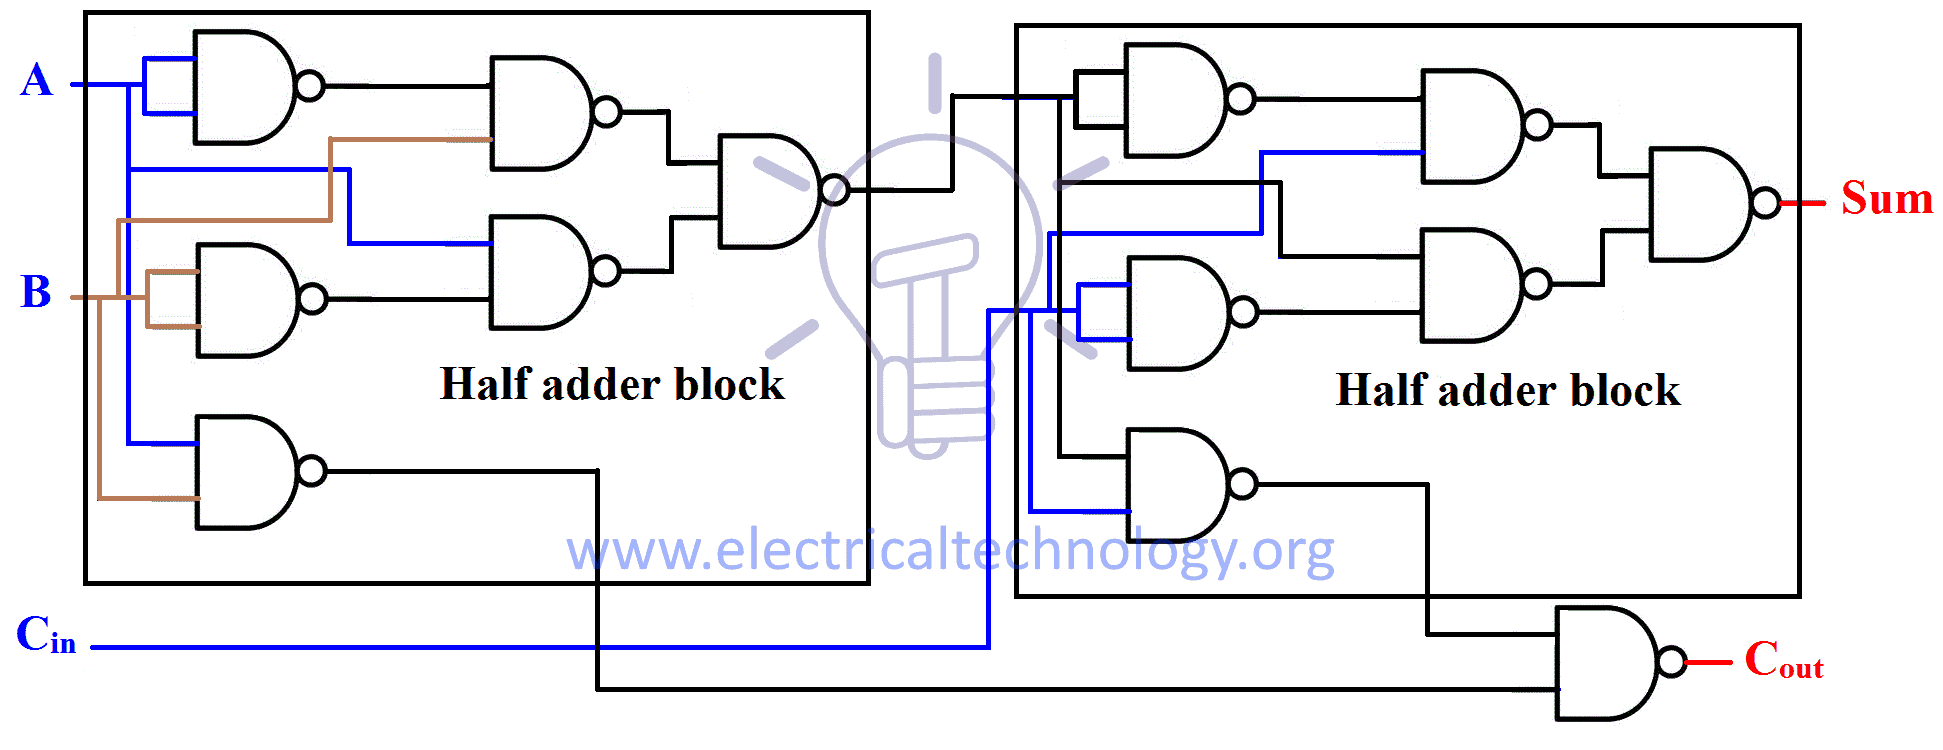 hight resolution of in nand half adder carry out schematic carry out has been inverted at the end we will bypass the inverter and feed it to nand gate as shown in the